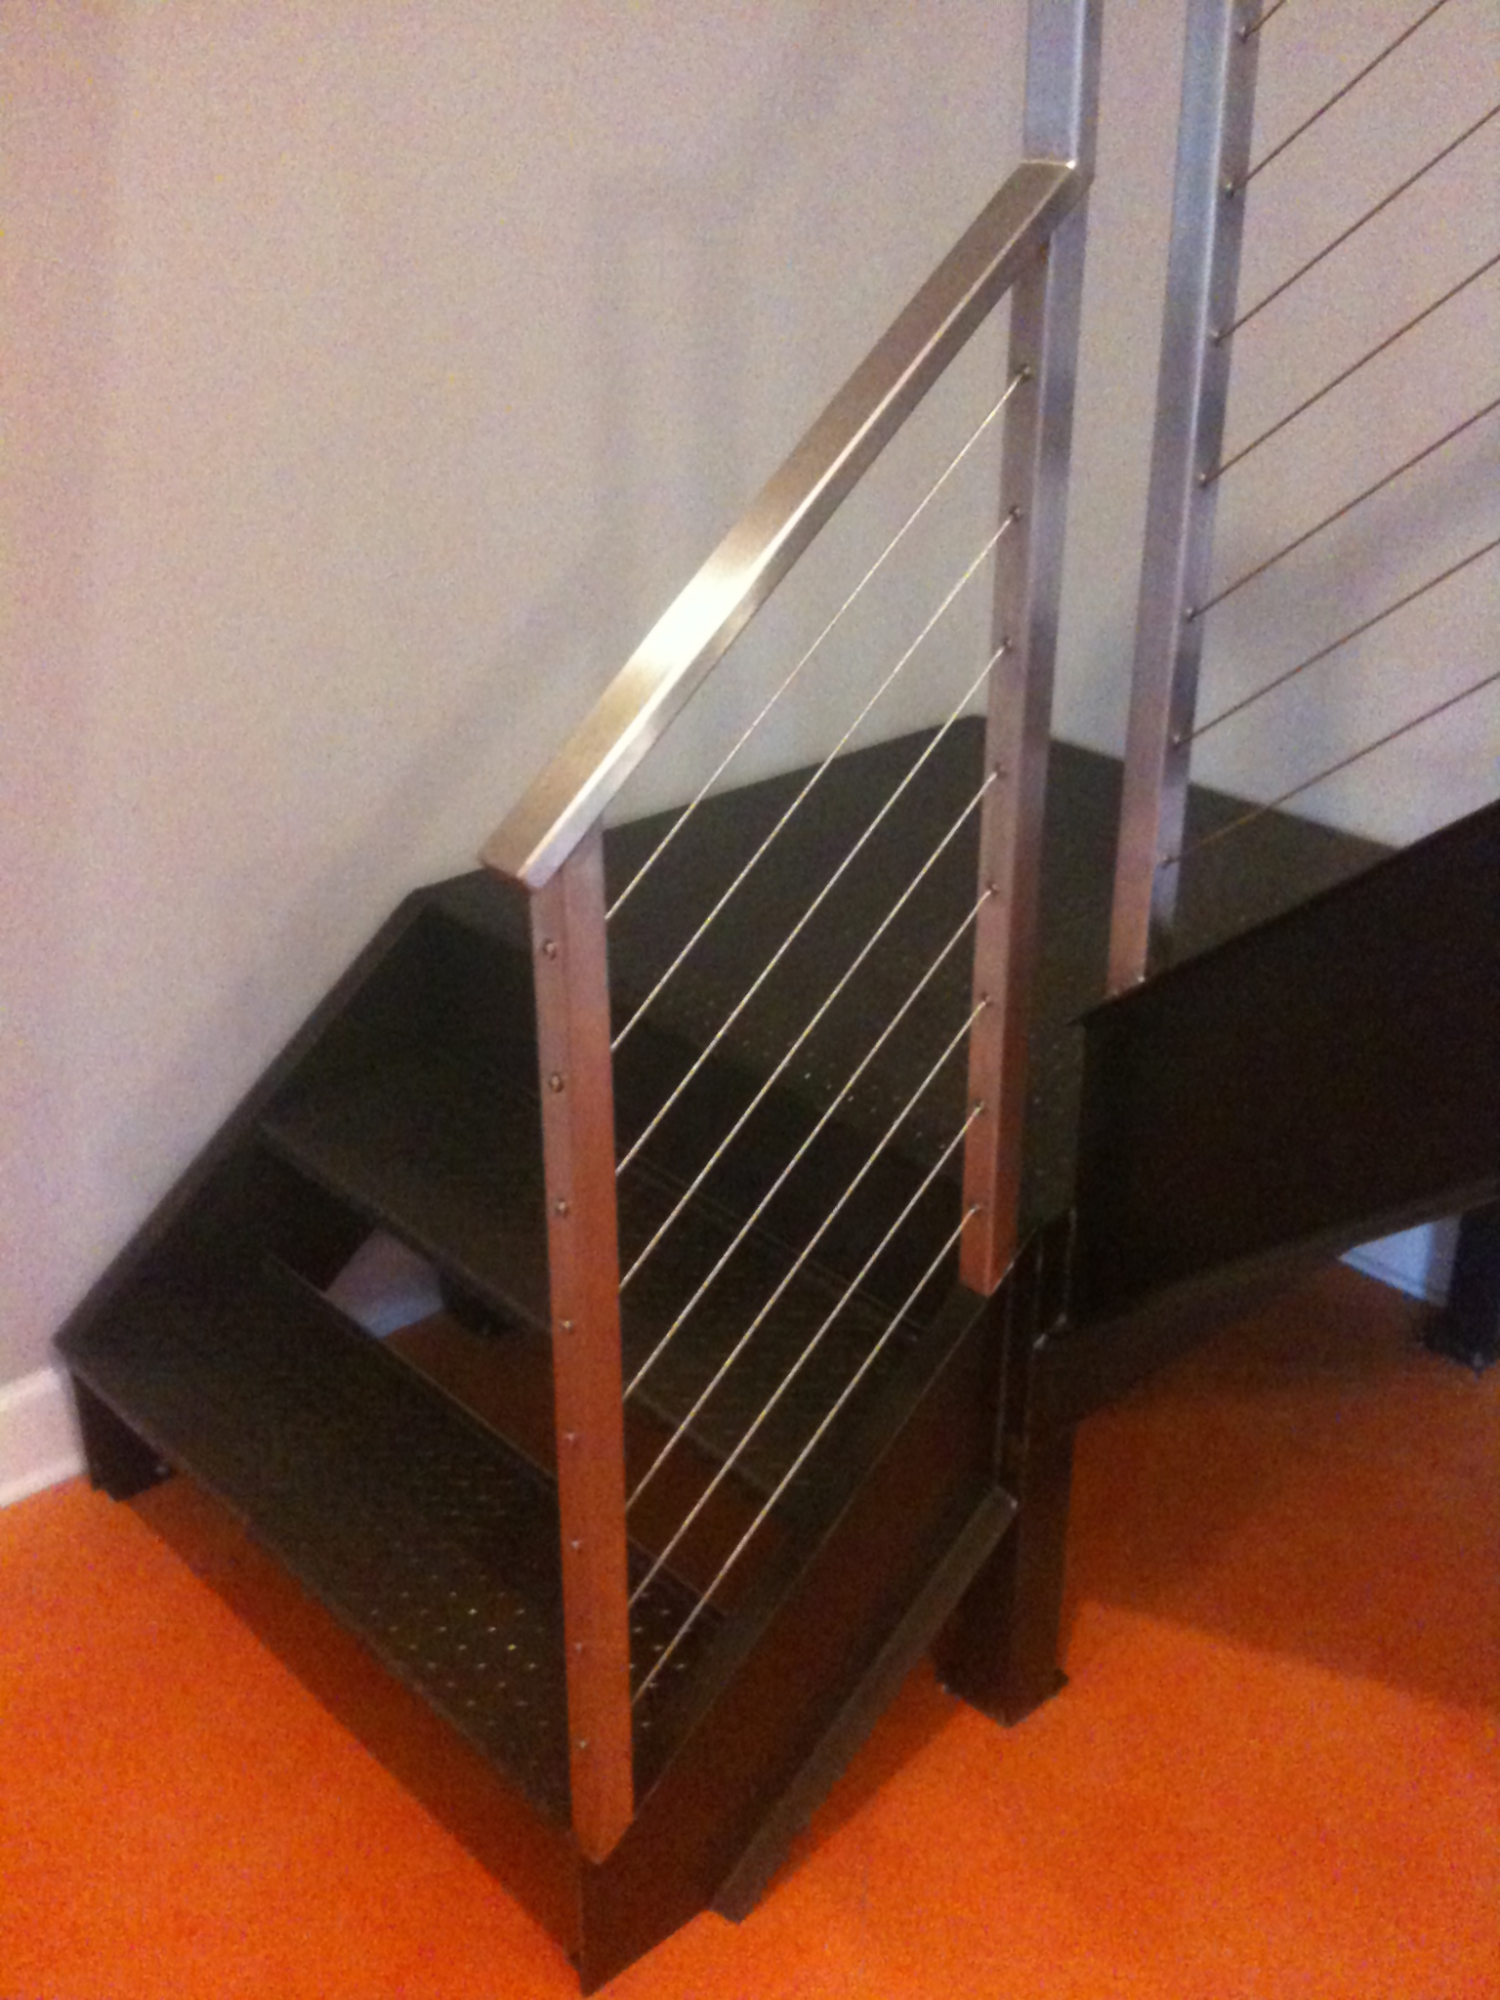 Stainless Steel Rectangle Tube Cable Railing & Painted Steel Staircase